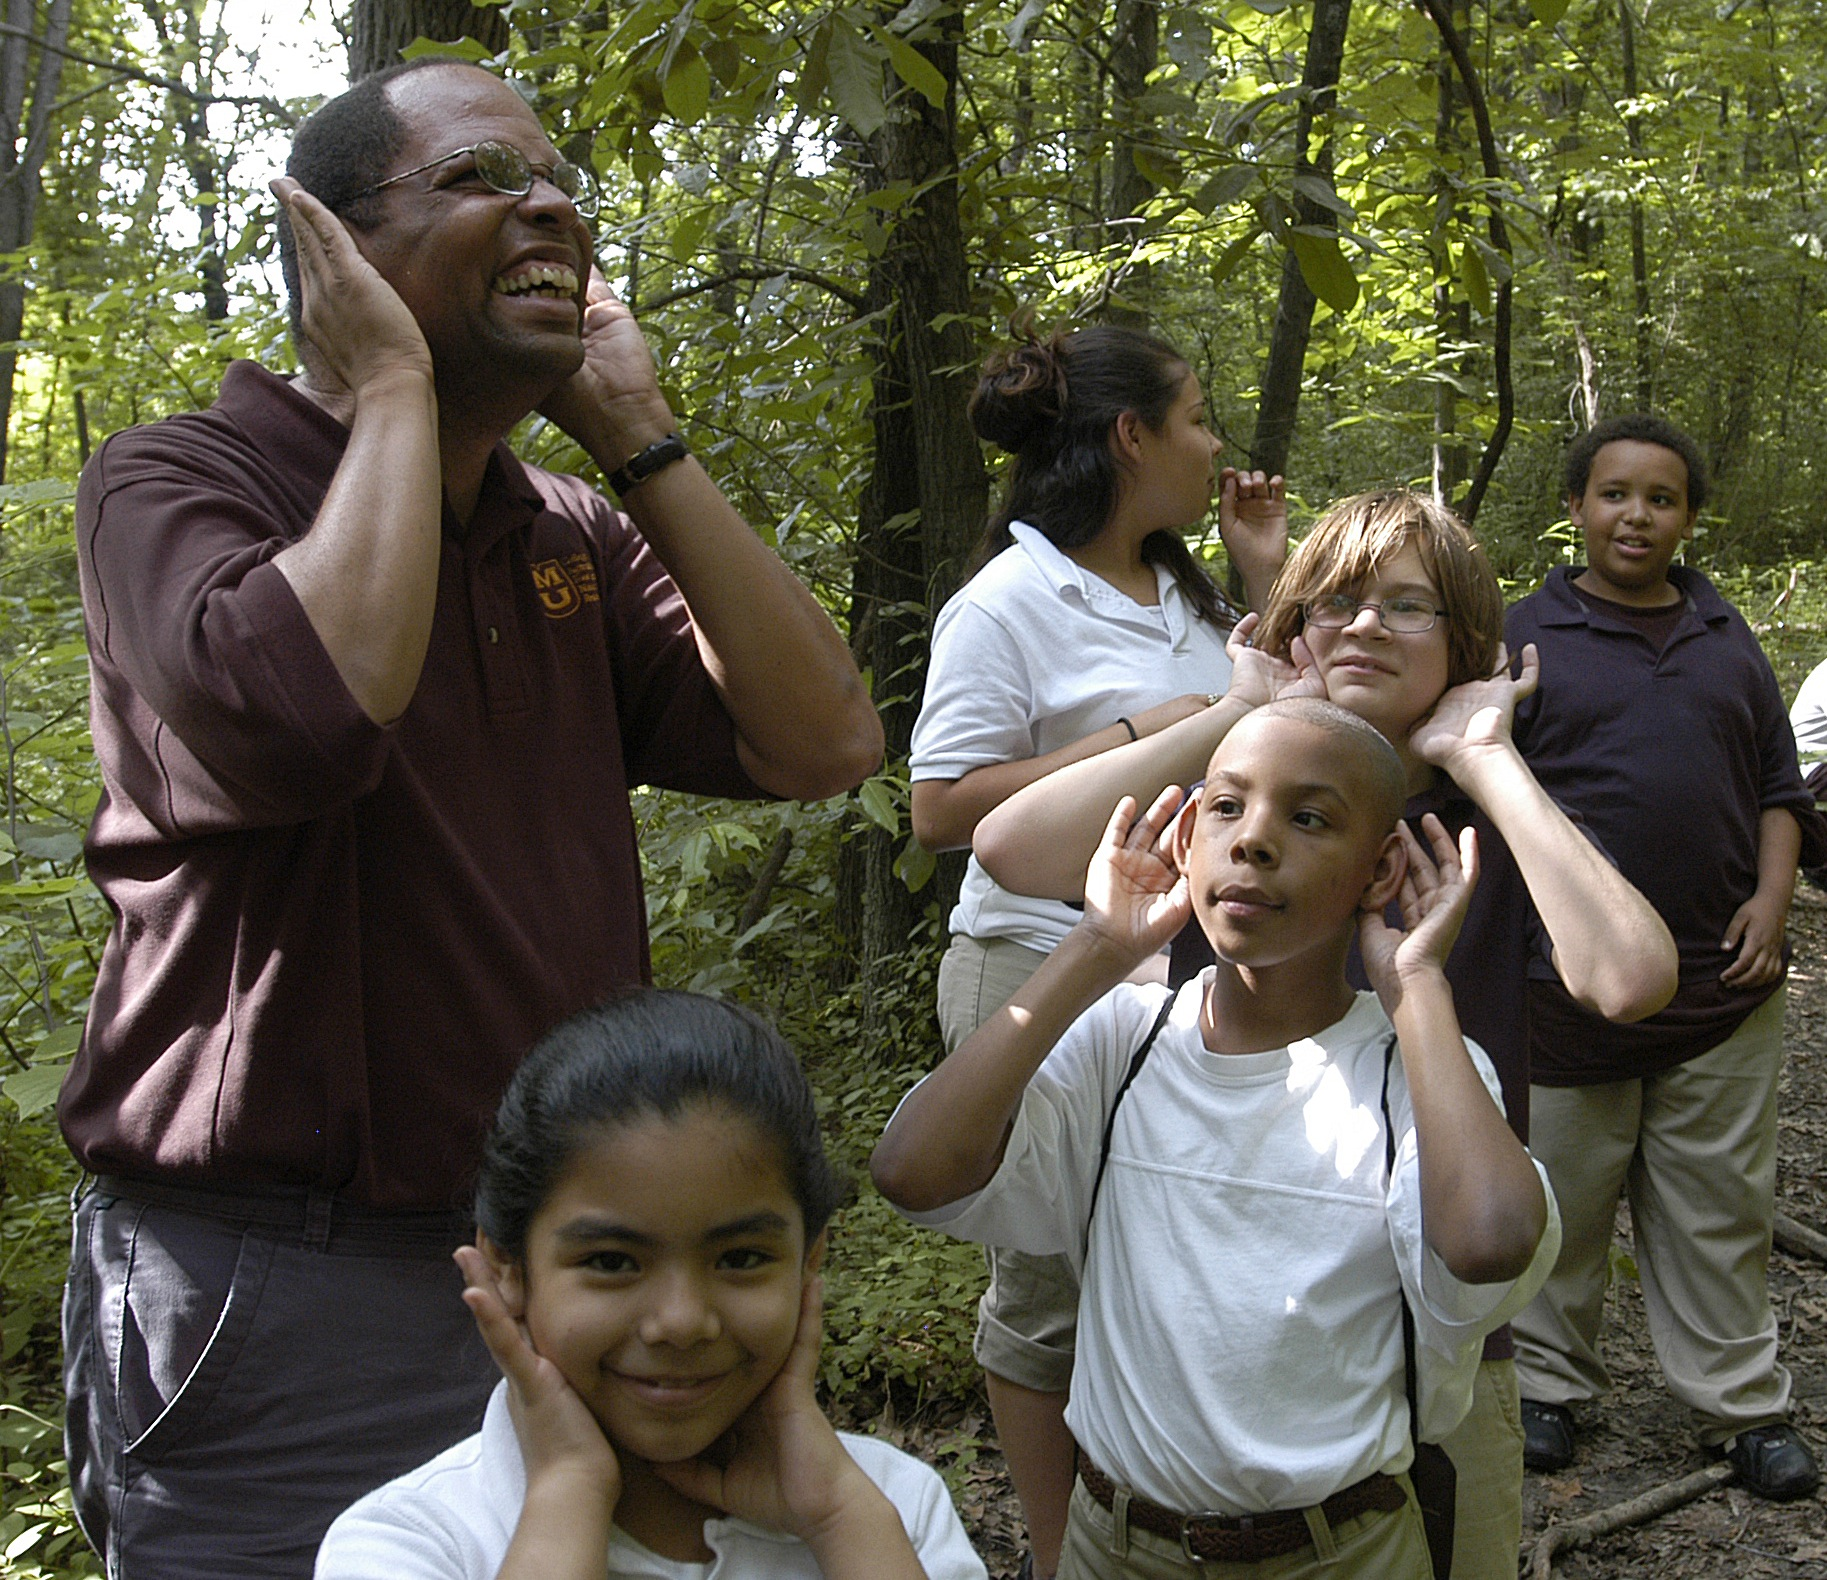 Charles Nilon encourages a group of Kansas City area school choldren to listen to the sounds they hear on a walk along a nature trail near their school. Photo by Steve Morse